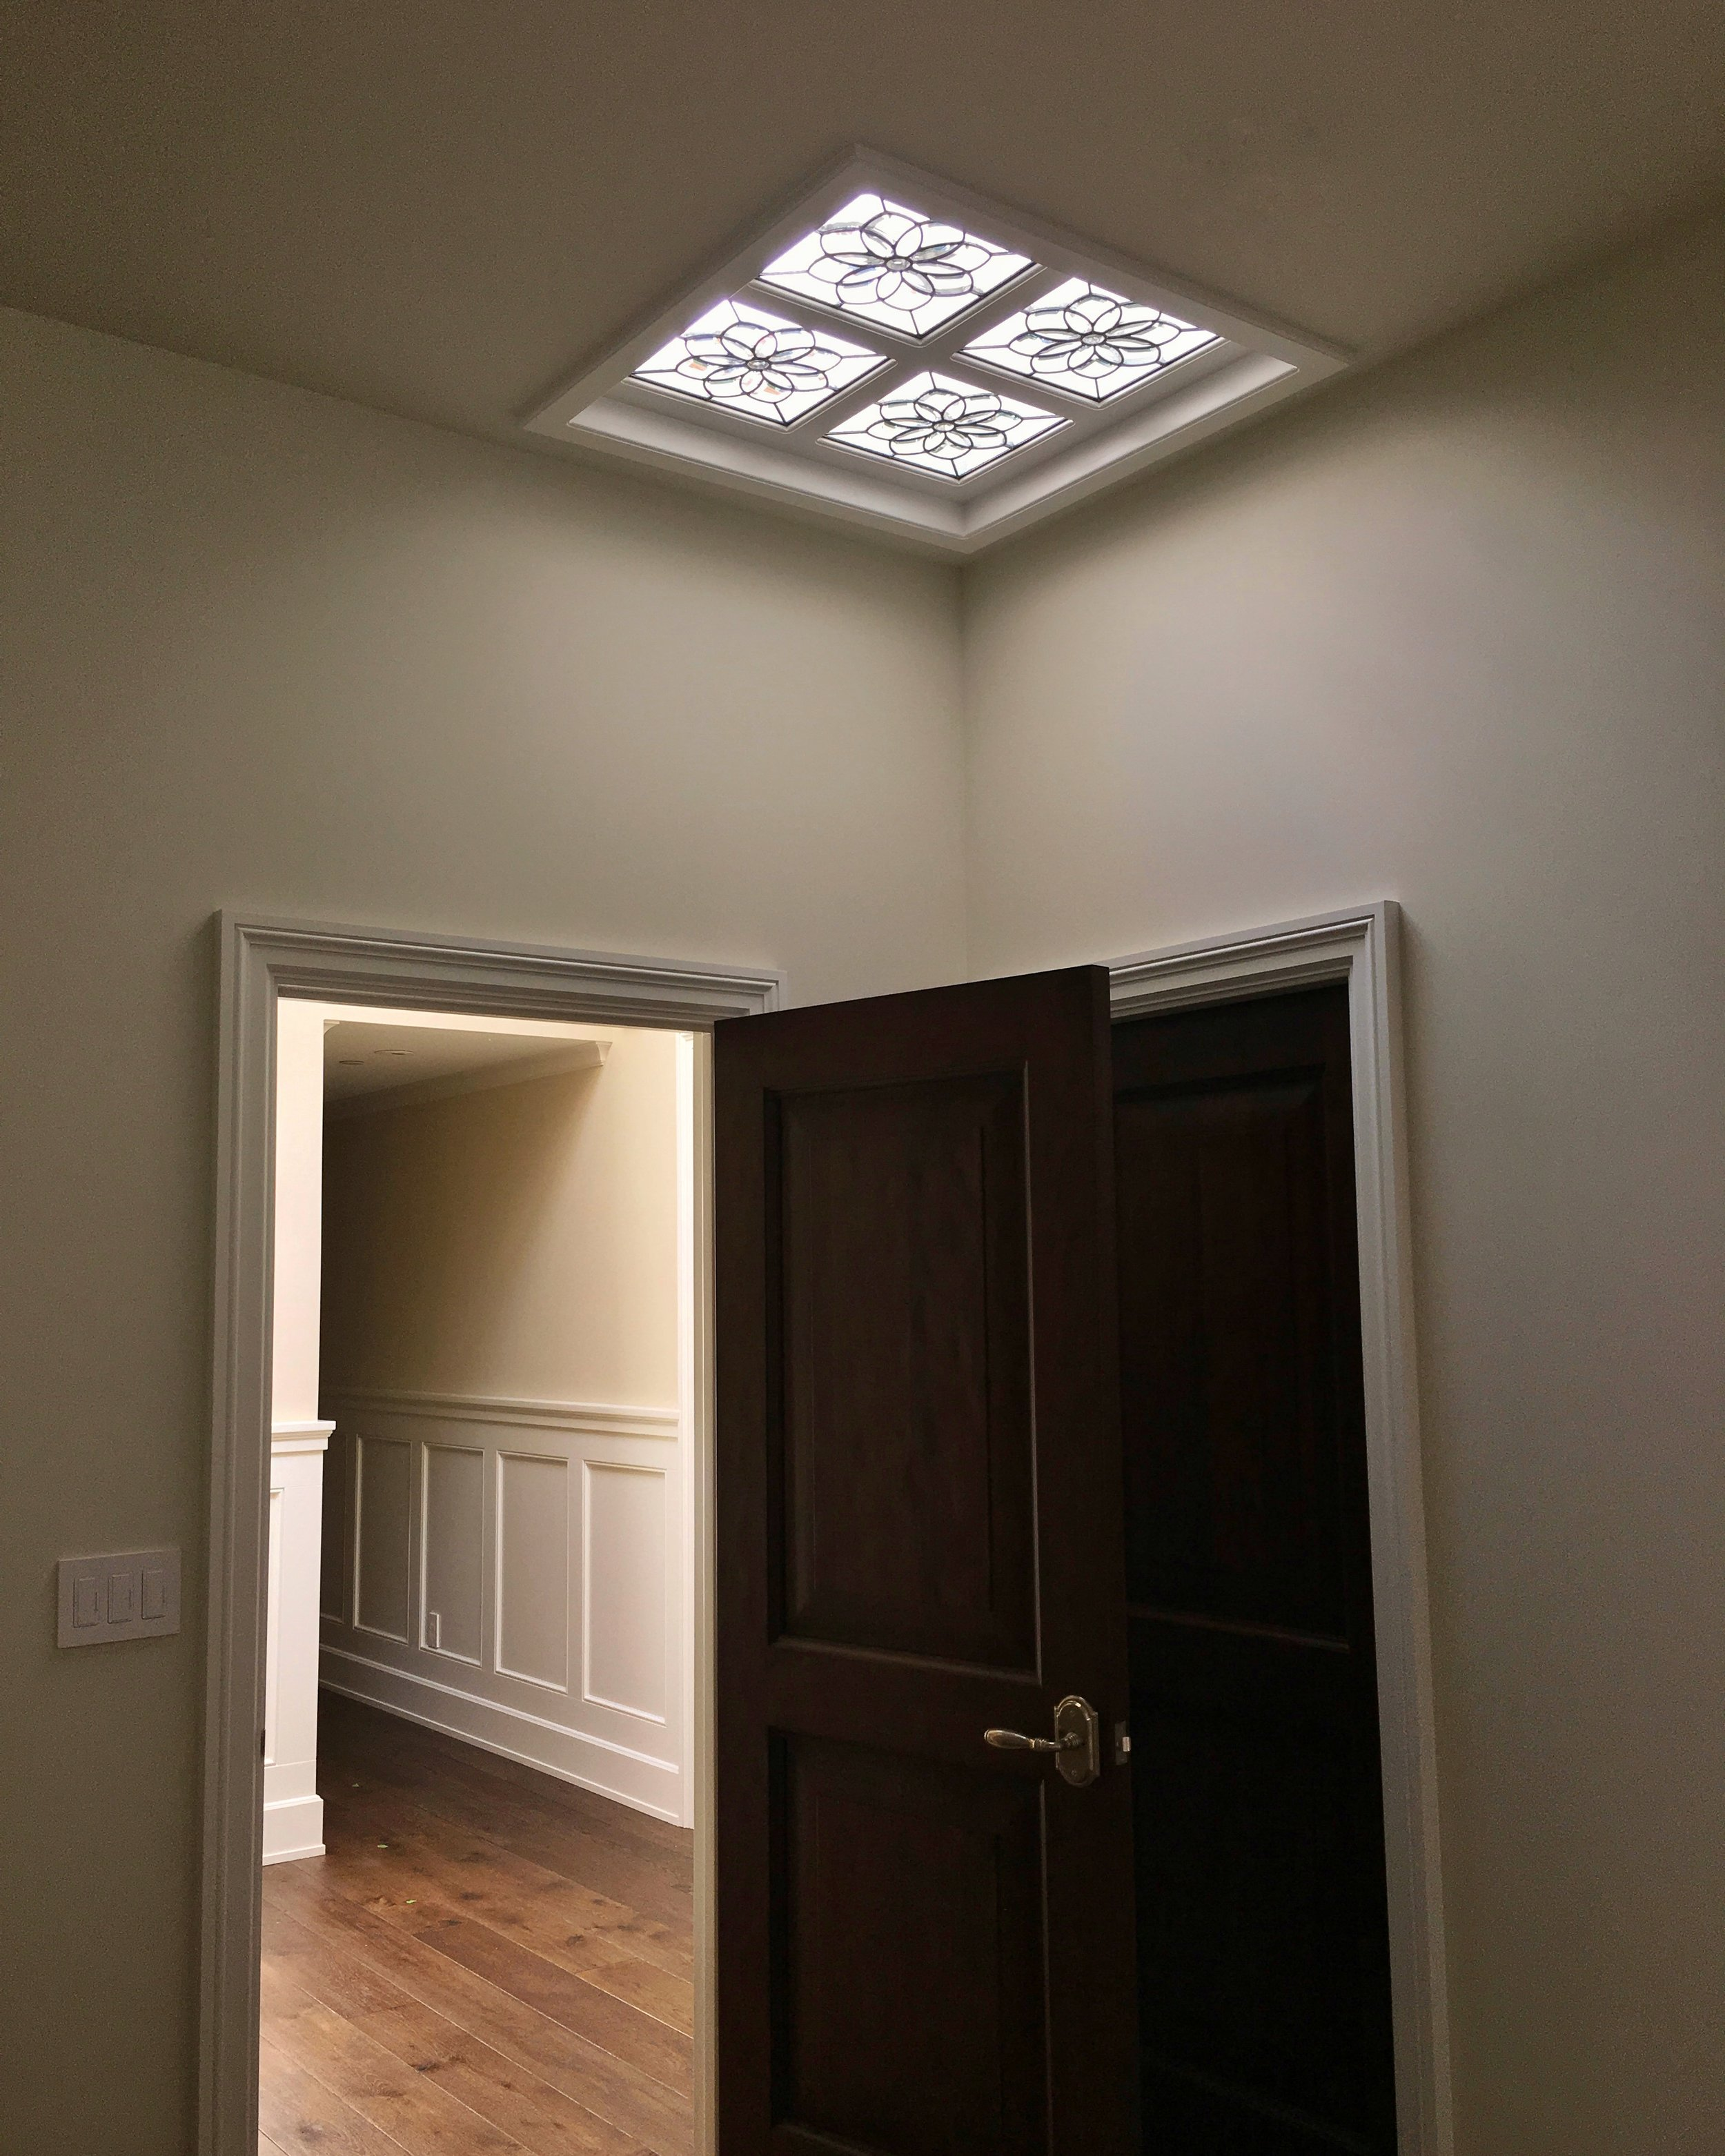 bevel cluster floral leaded glass stained glass skylight clear textured glass palo alto atherton menlo park san jose san francisco bay area legacy glass.JPG